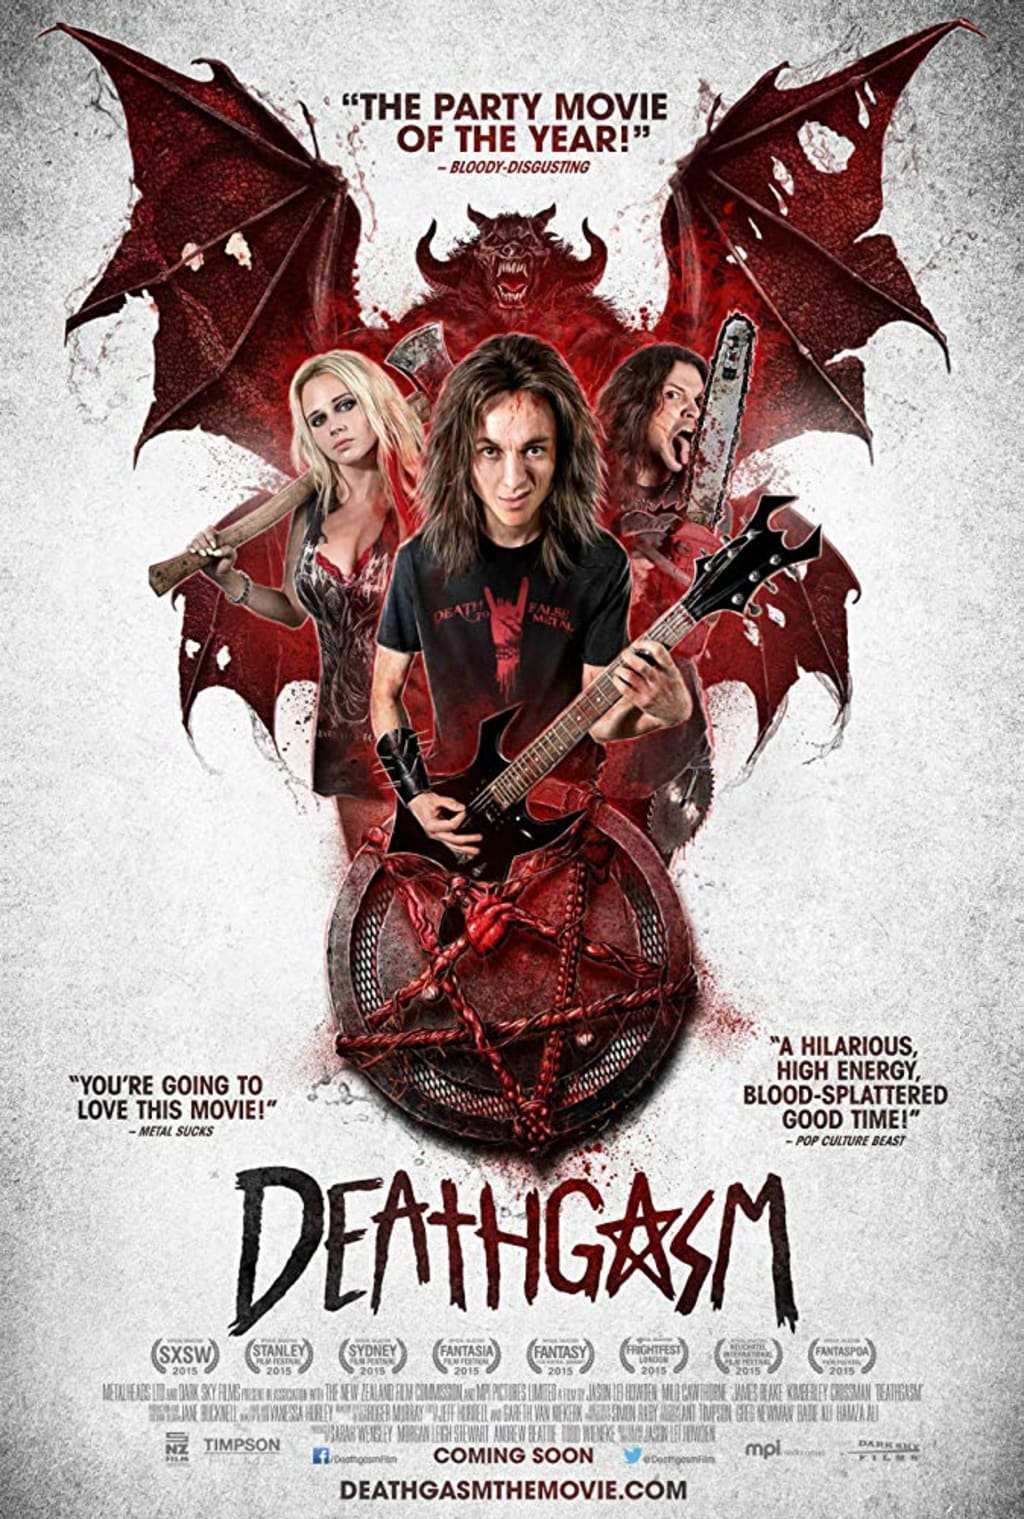 Reed Alexander's Horror Review of 'Deathgasm' (2015)